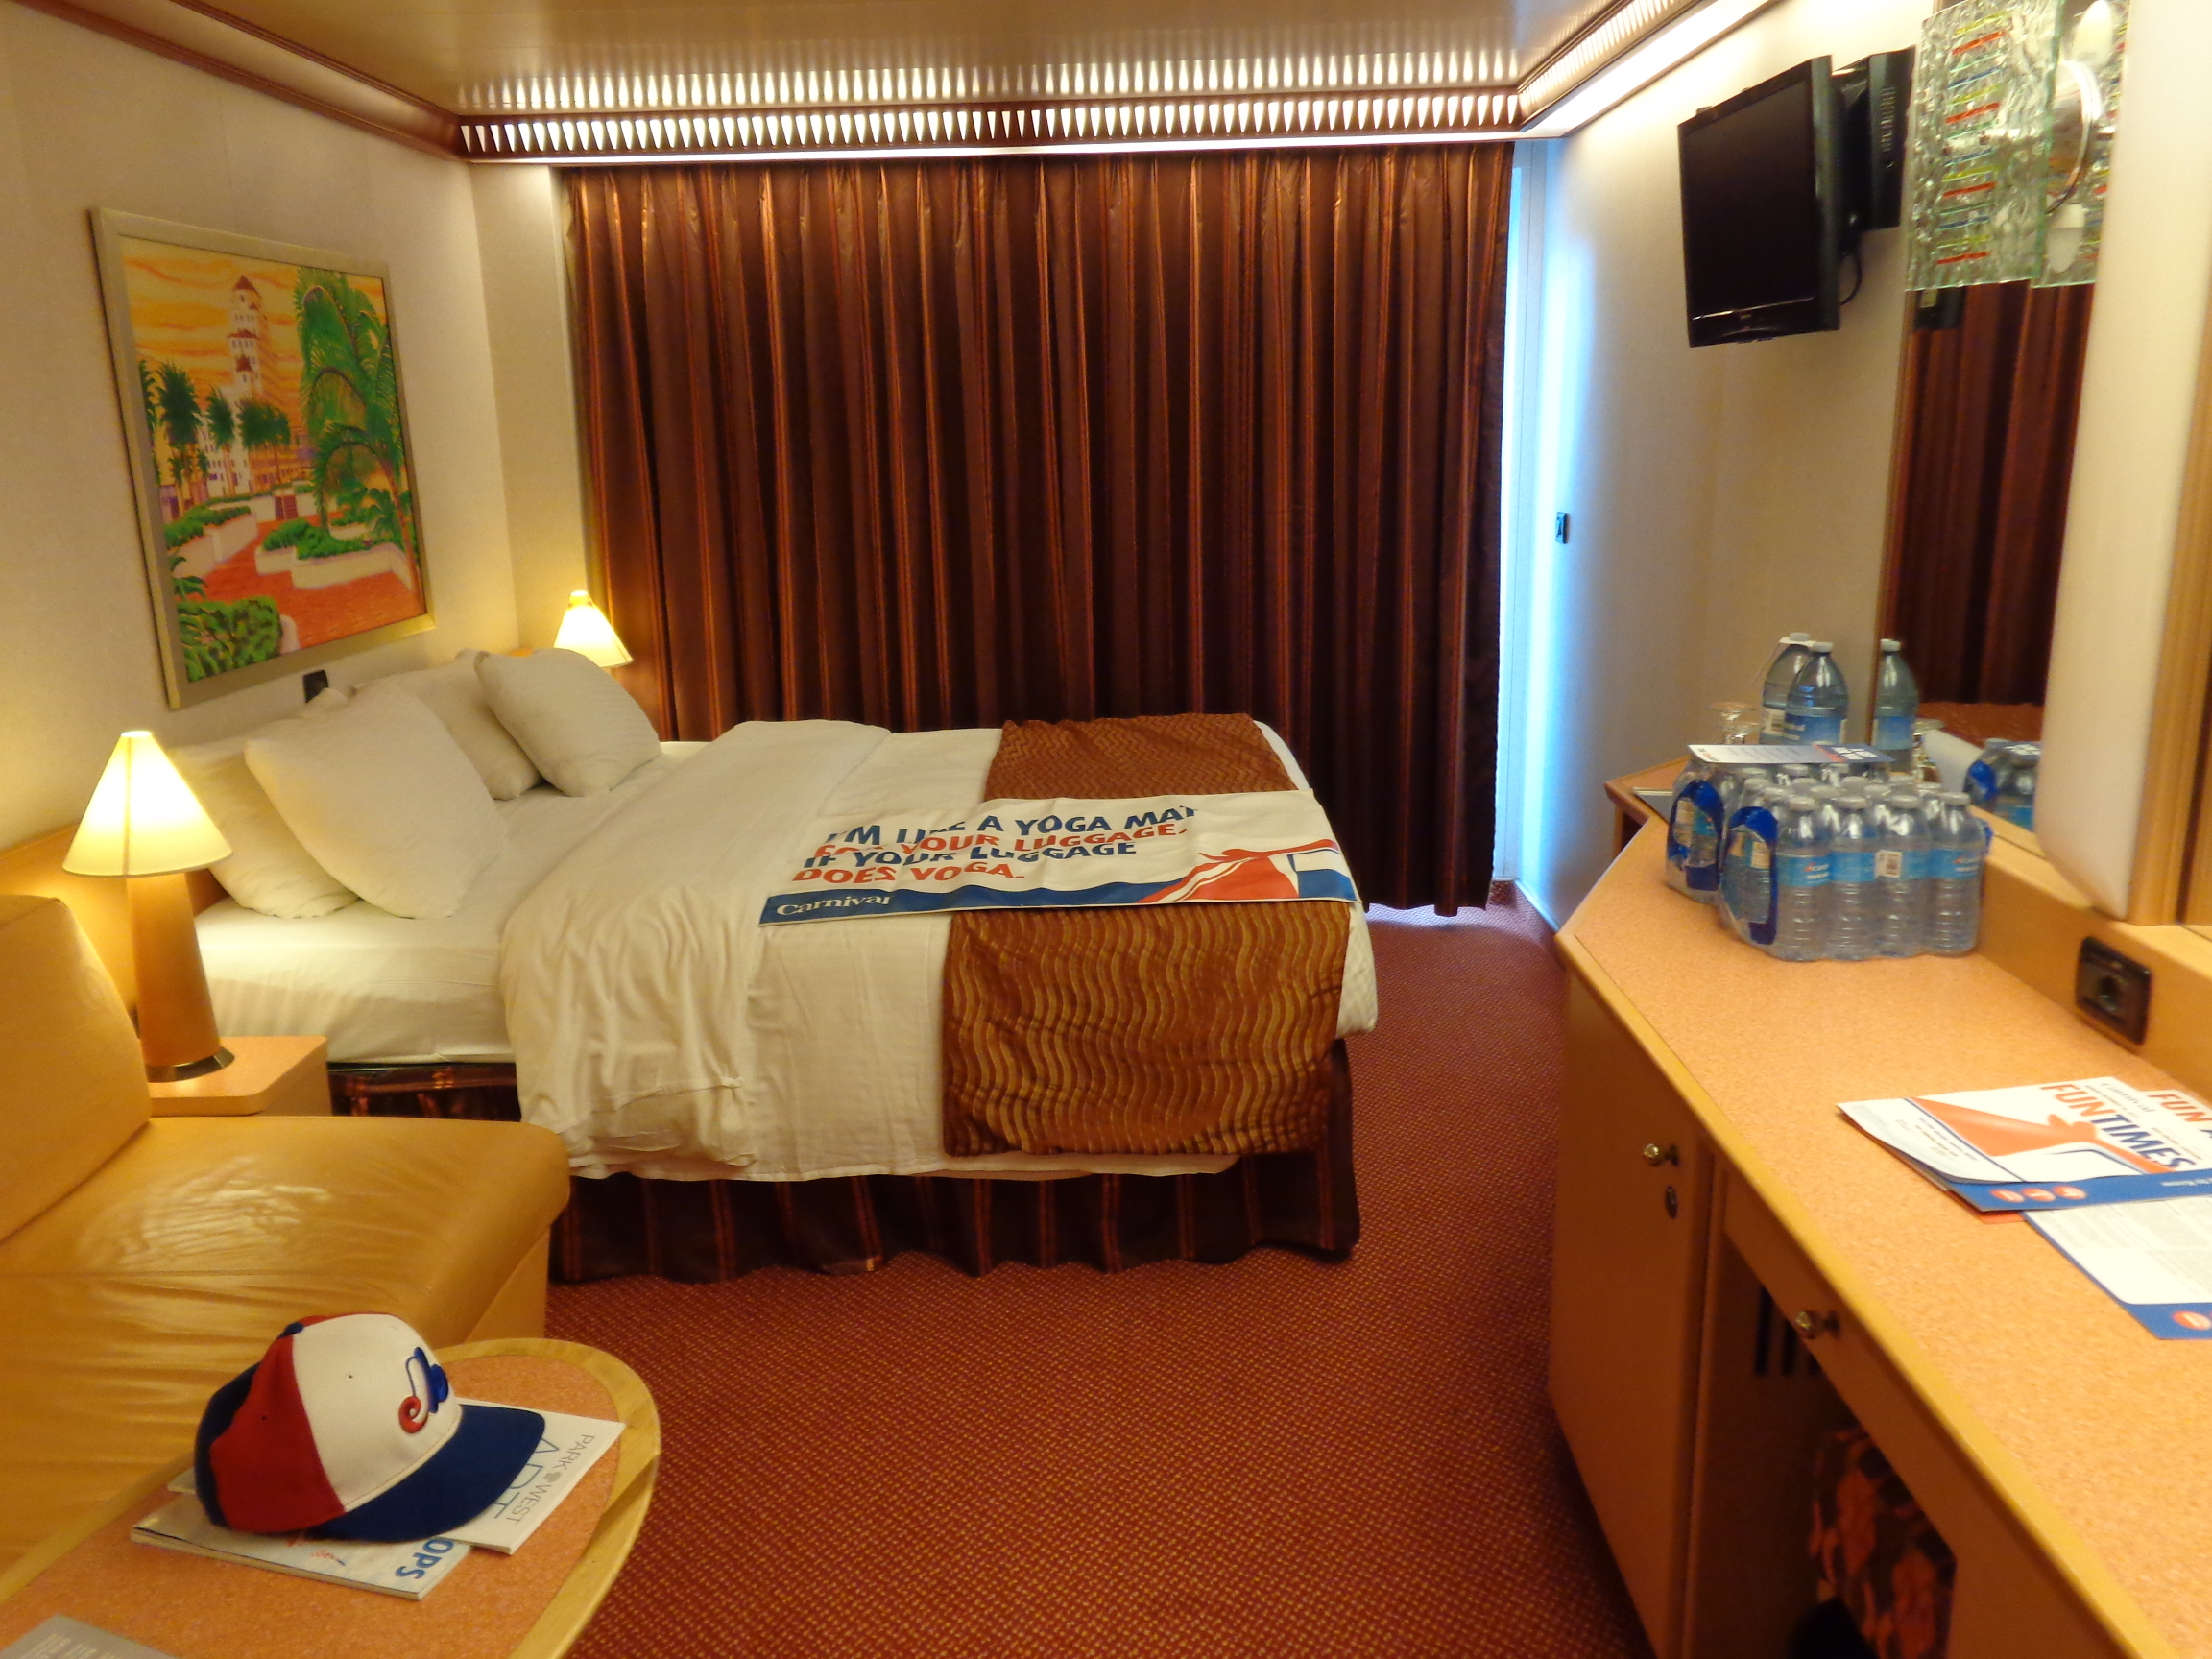 Carnival Dream Room 8434 Long Weekend Wanderlust